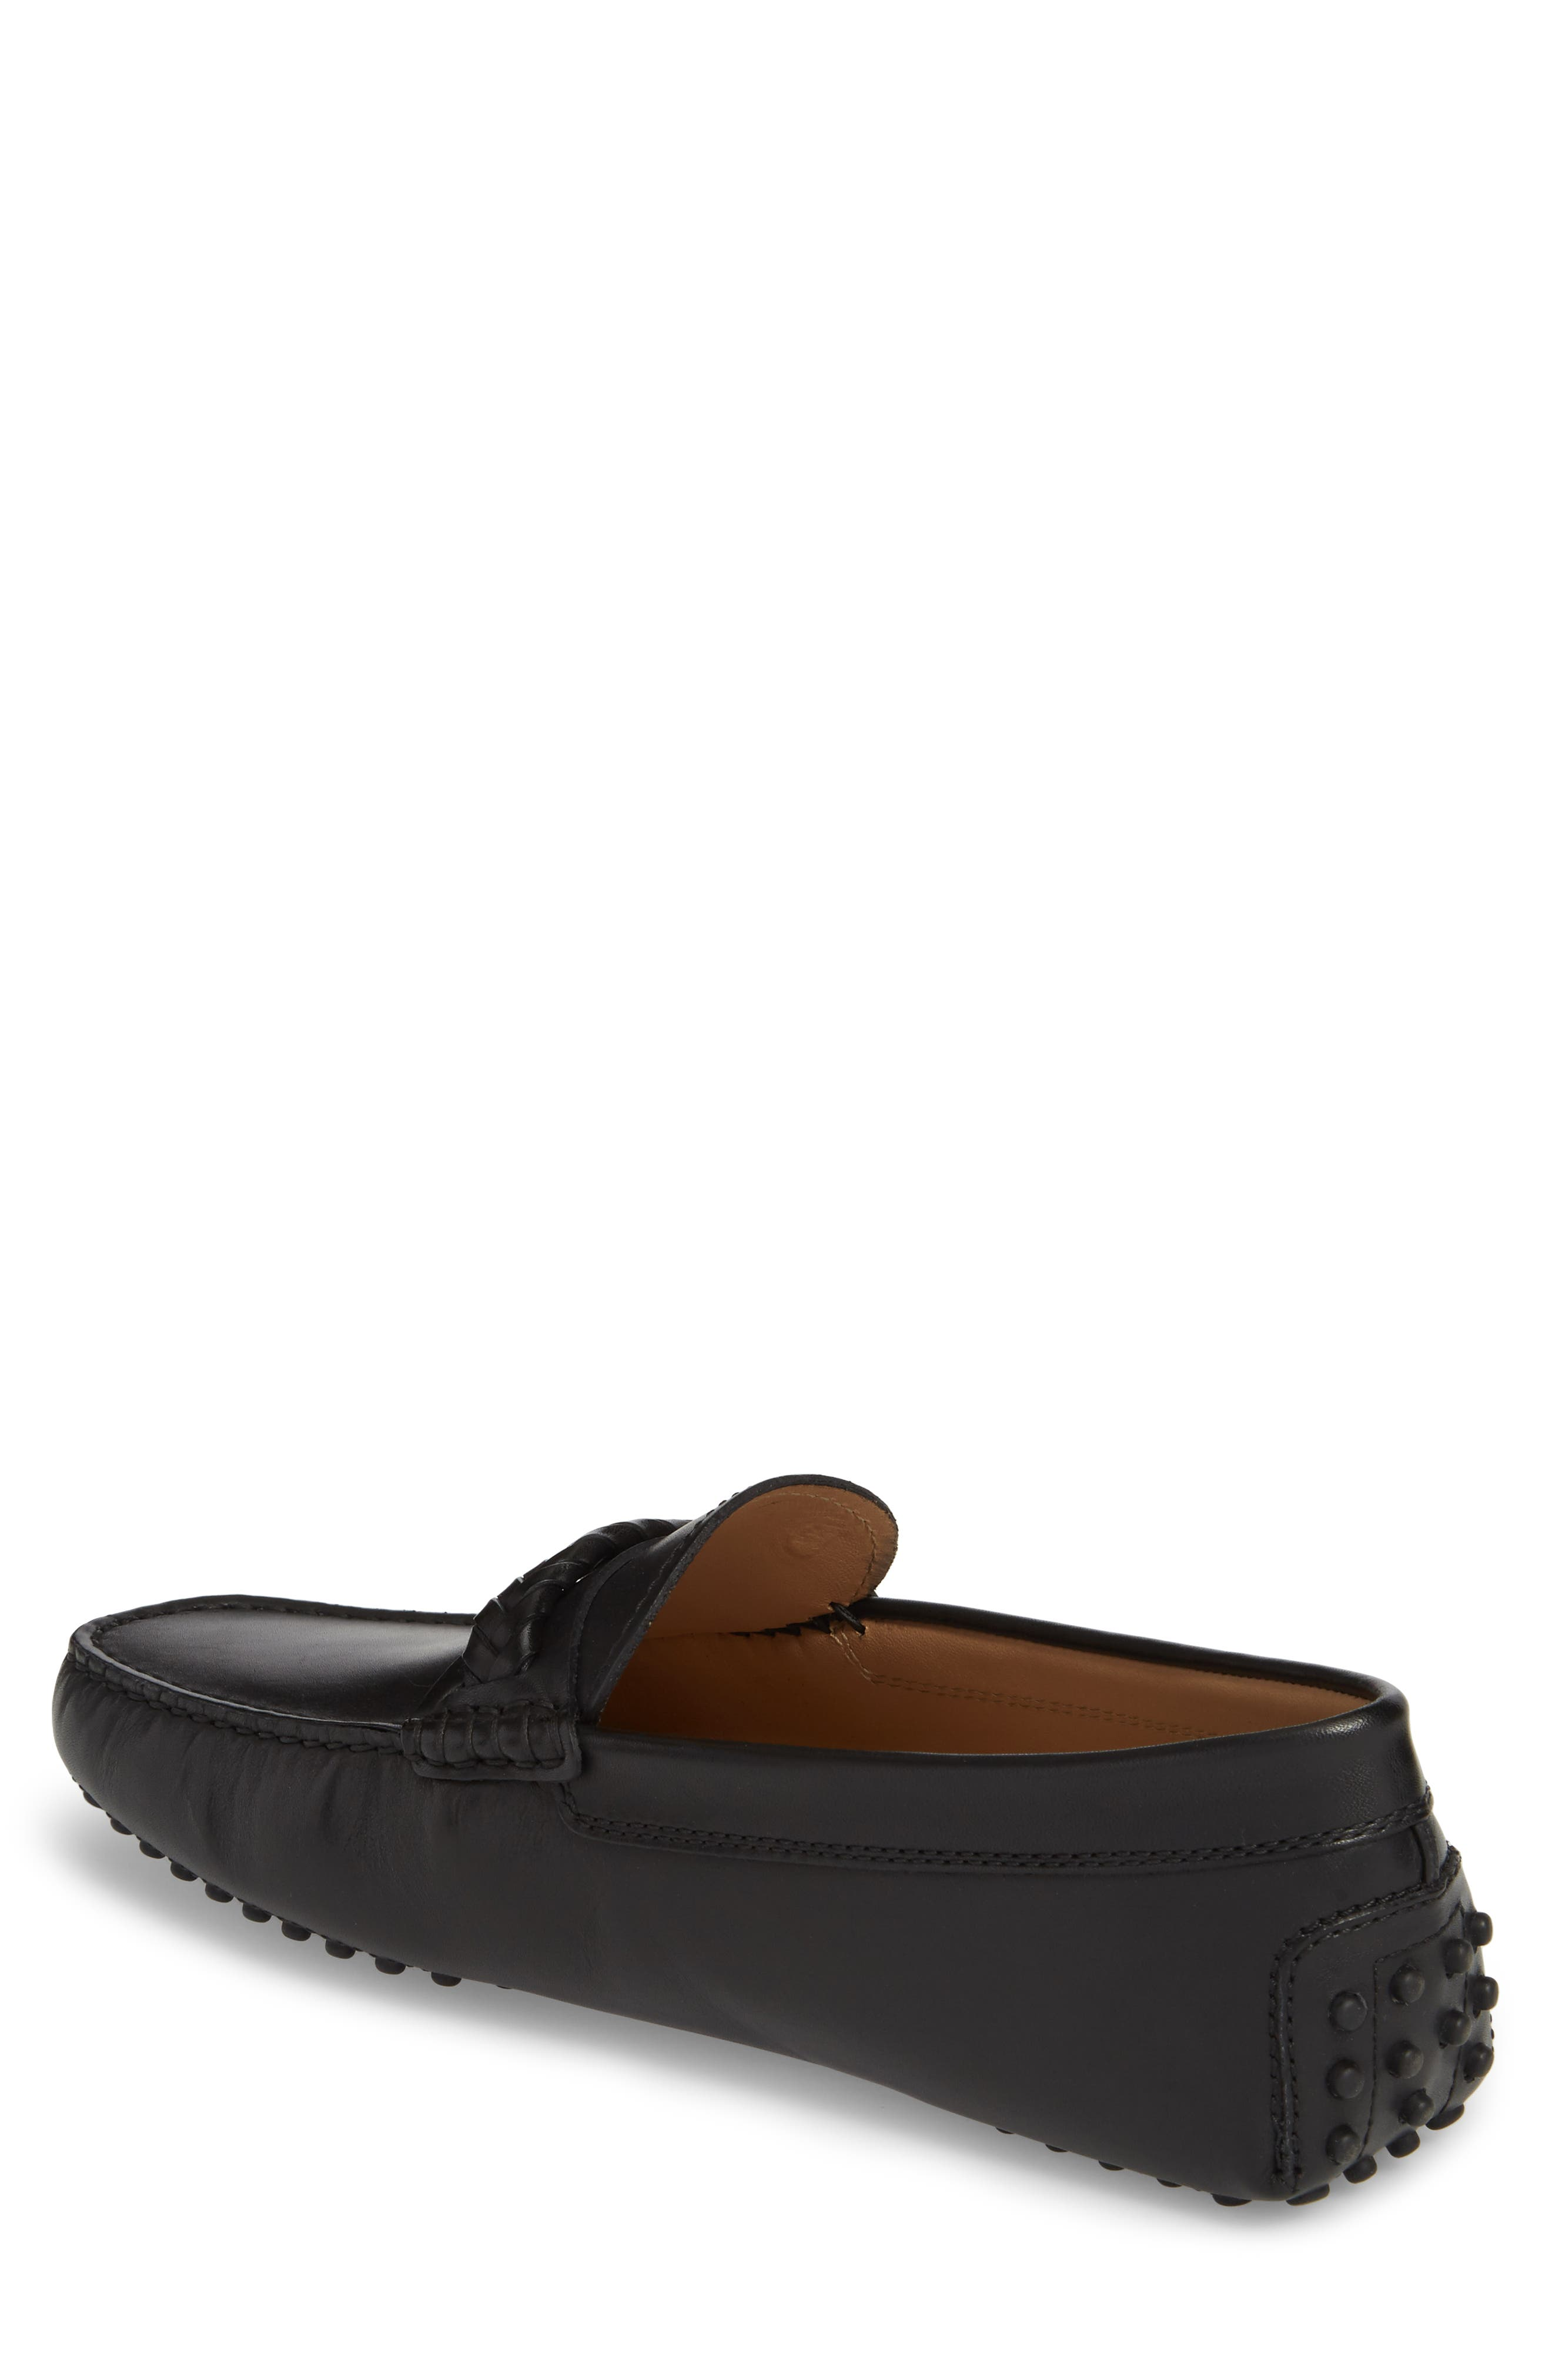 Gommini Driving Shoe,                             Alternate thumbnail 3, color,